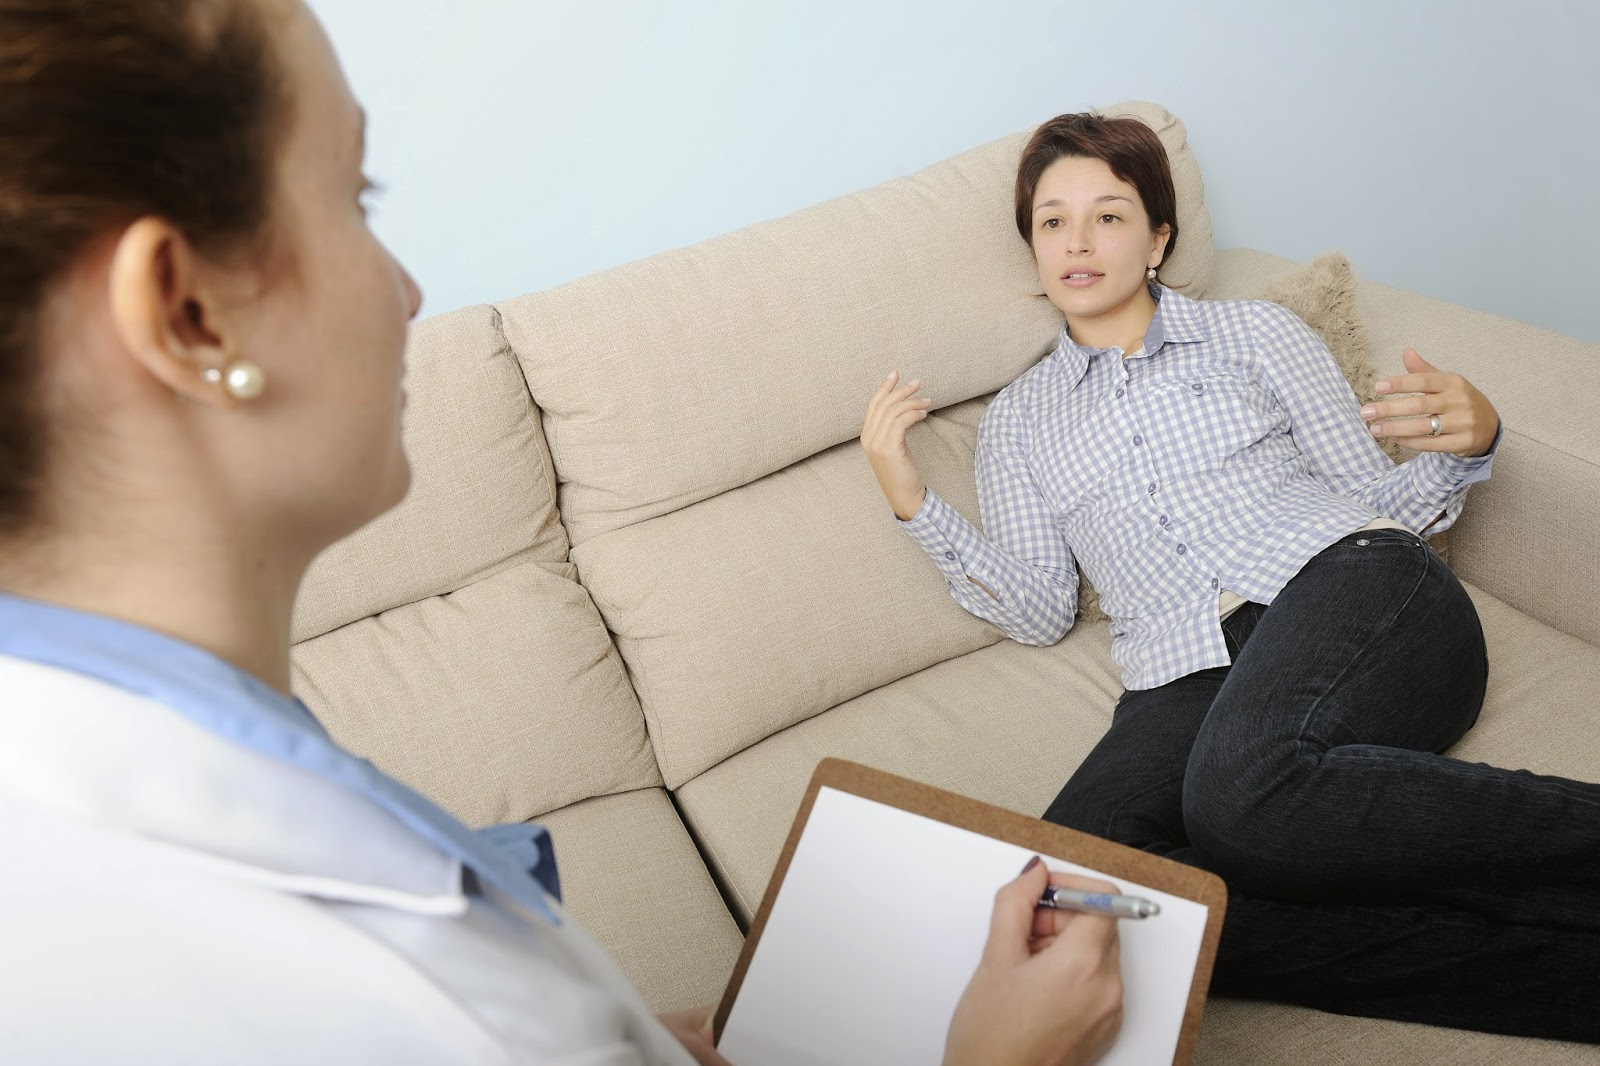 Erotic violations psychologist and client